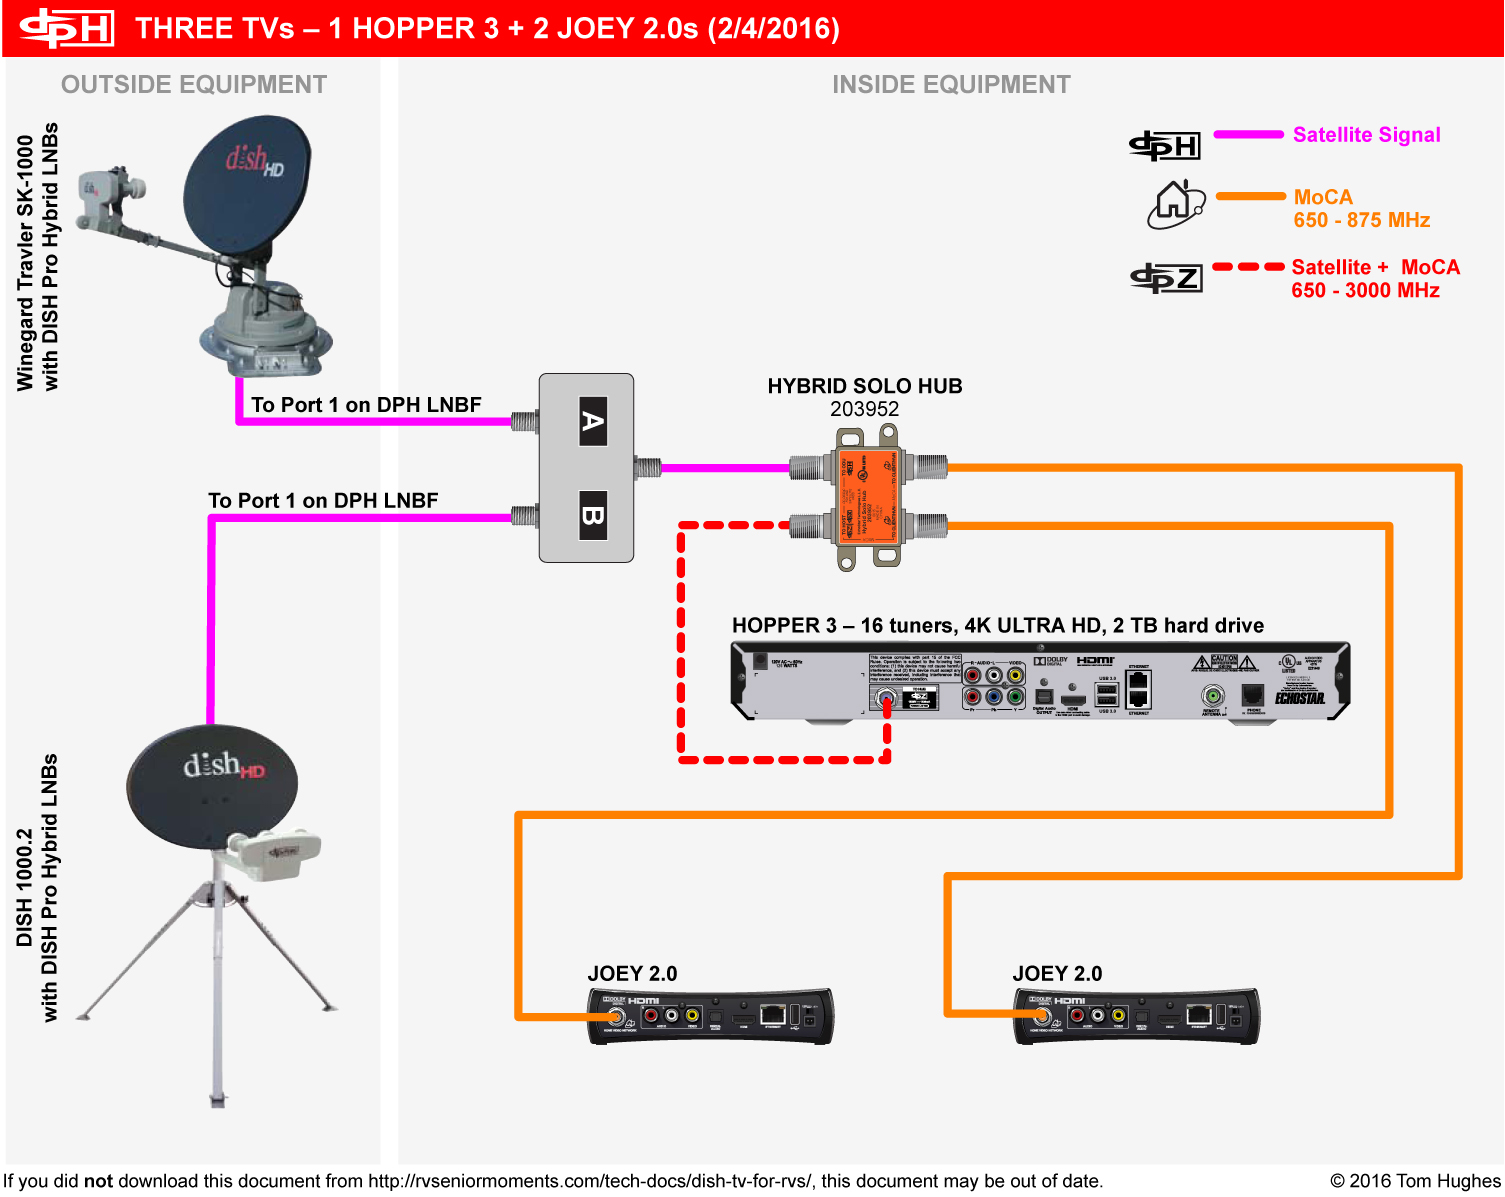 hopper3rv_00_threetvs hopper3 joeys?resize\=840%2C668 dish network wiring diagrams & combine \& split or seperate joey wiring diagram at crackthecode.co